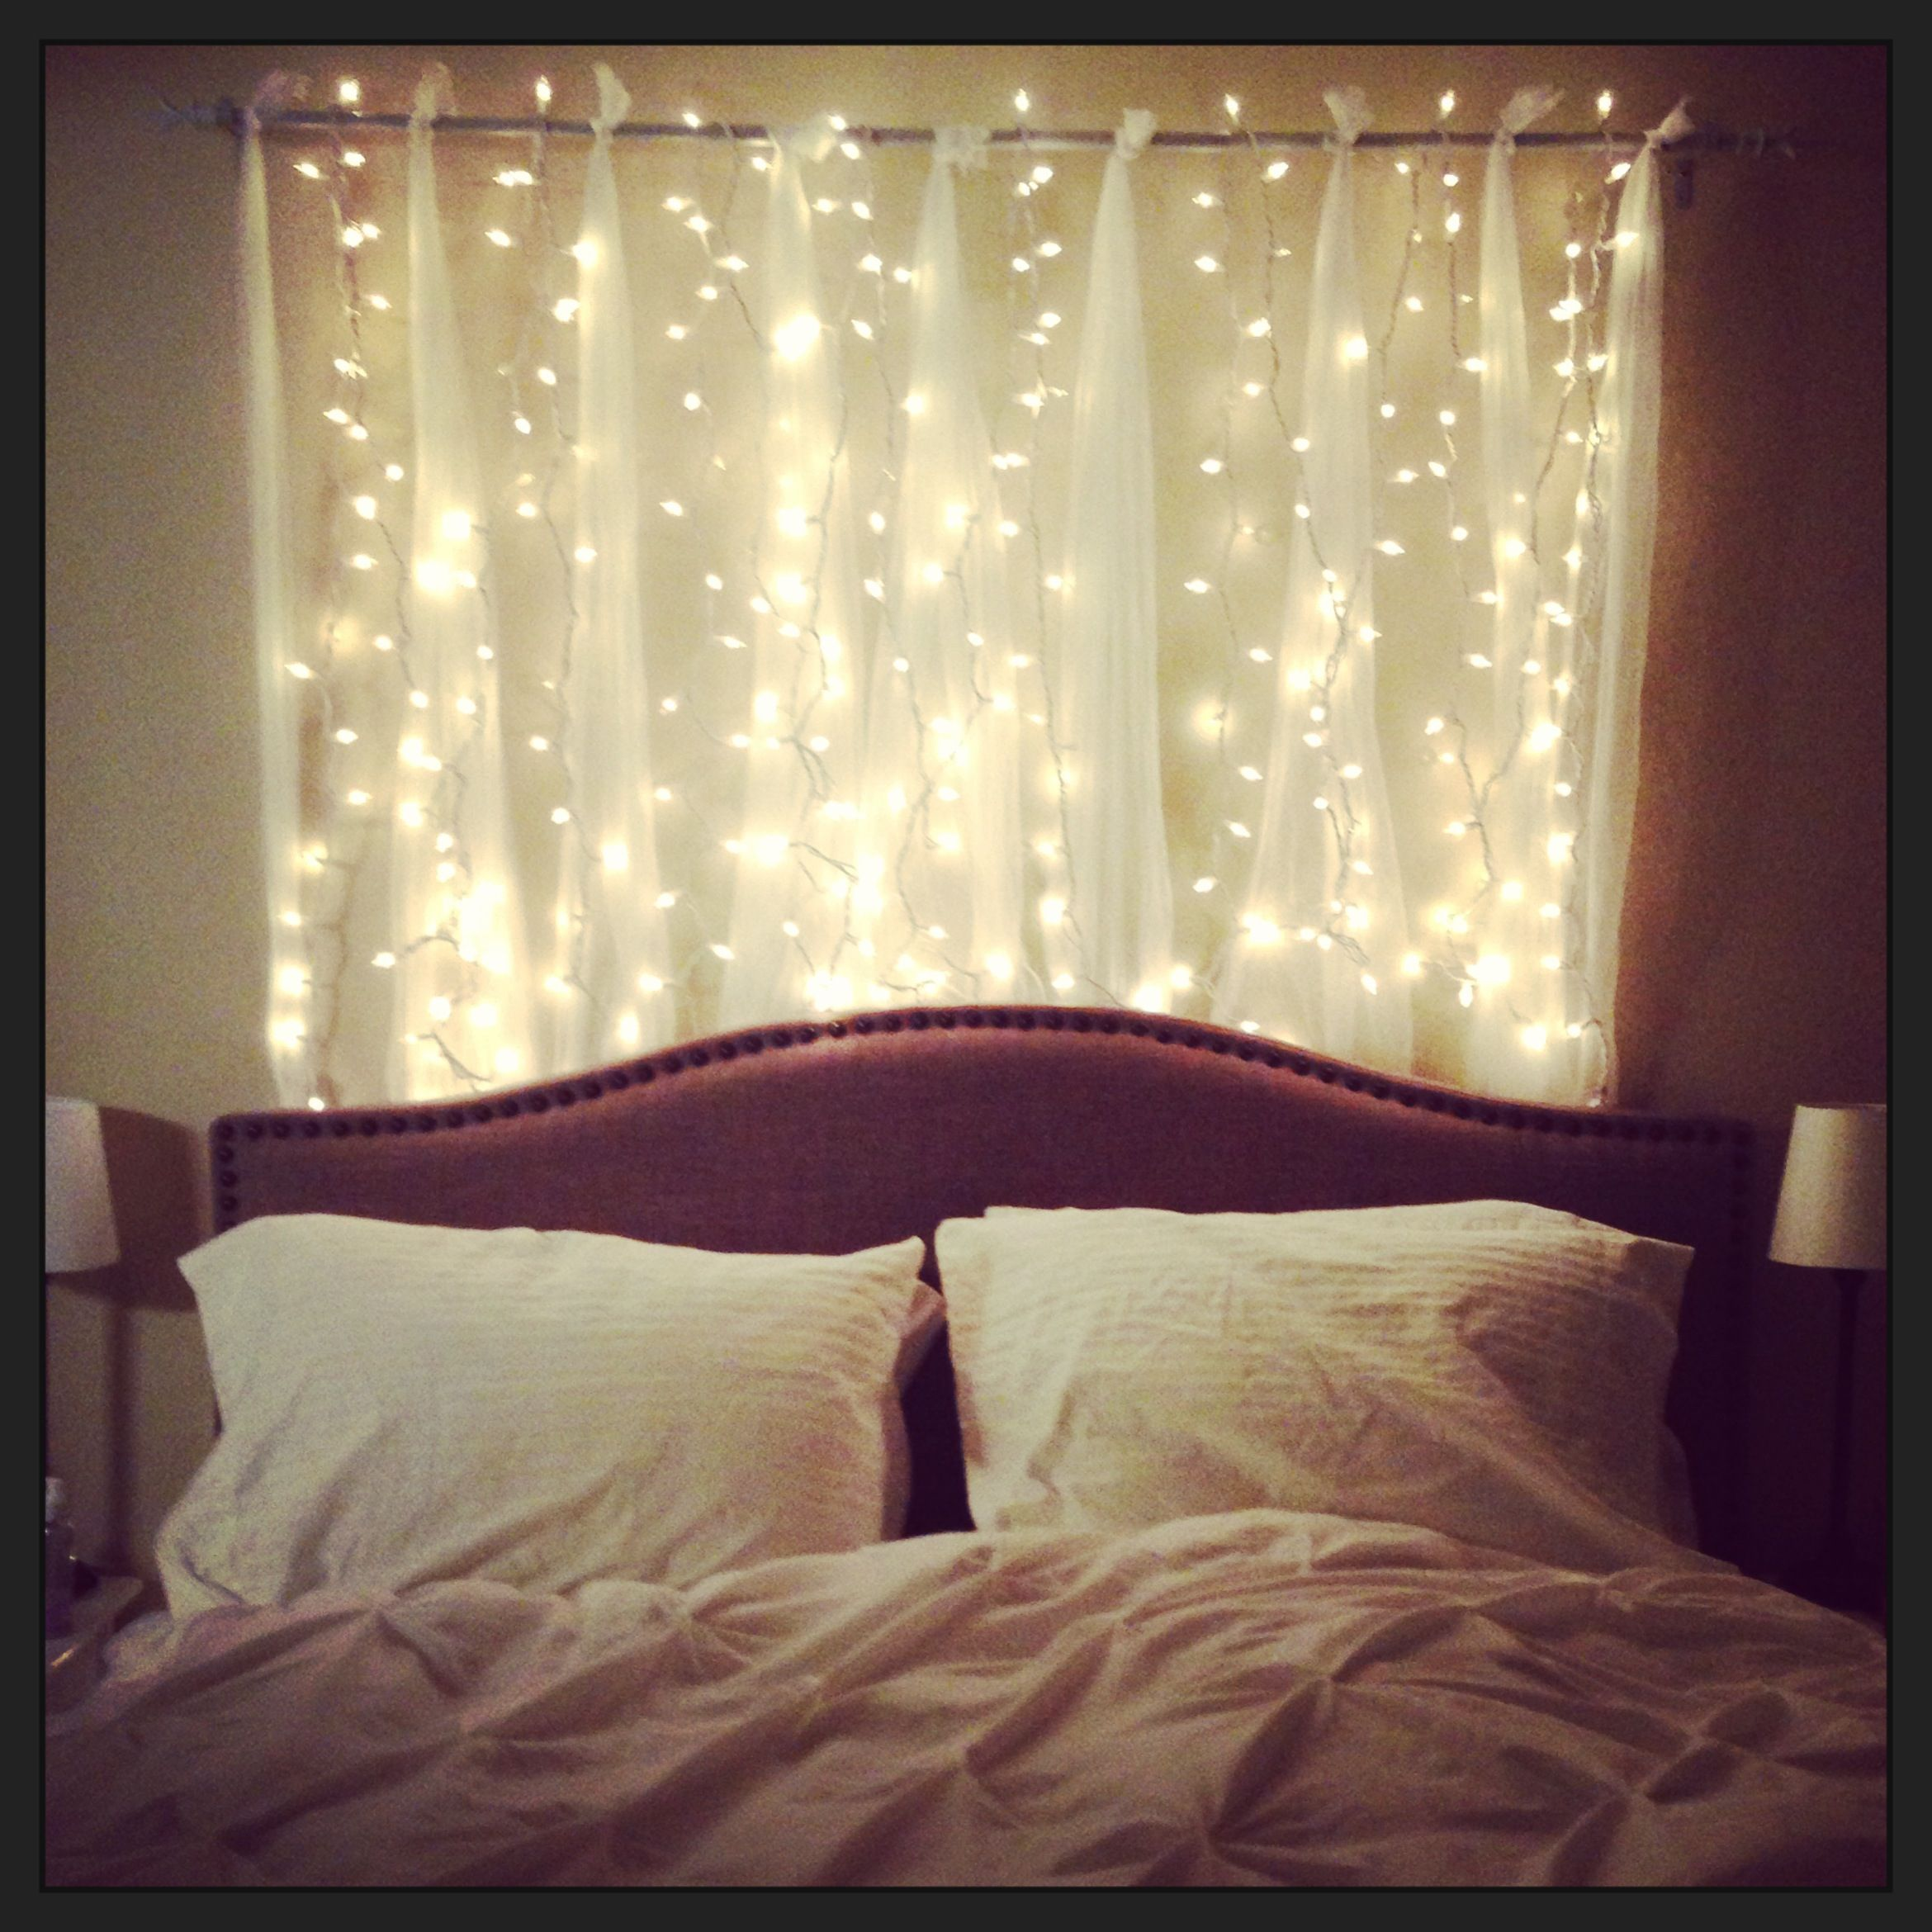 Twinkle Lights Headboard I Absolutely Love This Home Inspiration Pinterest Lights